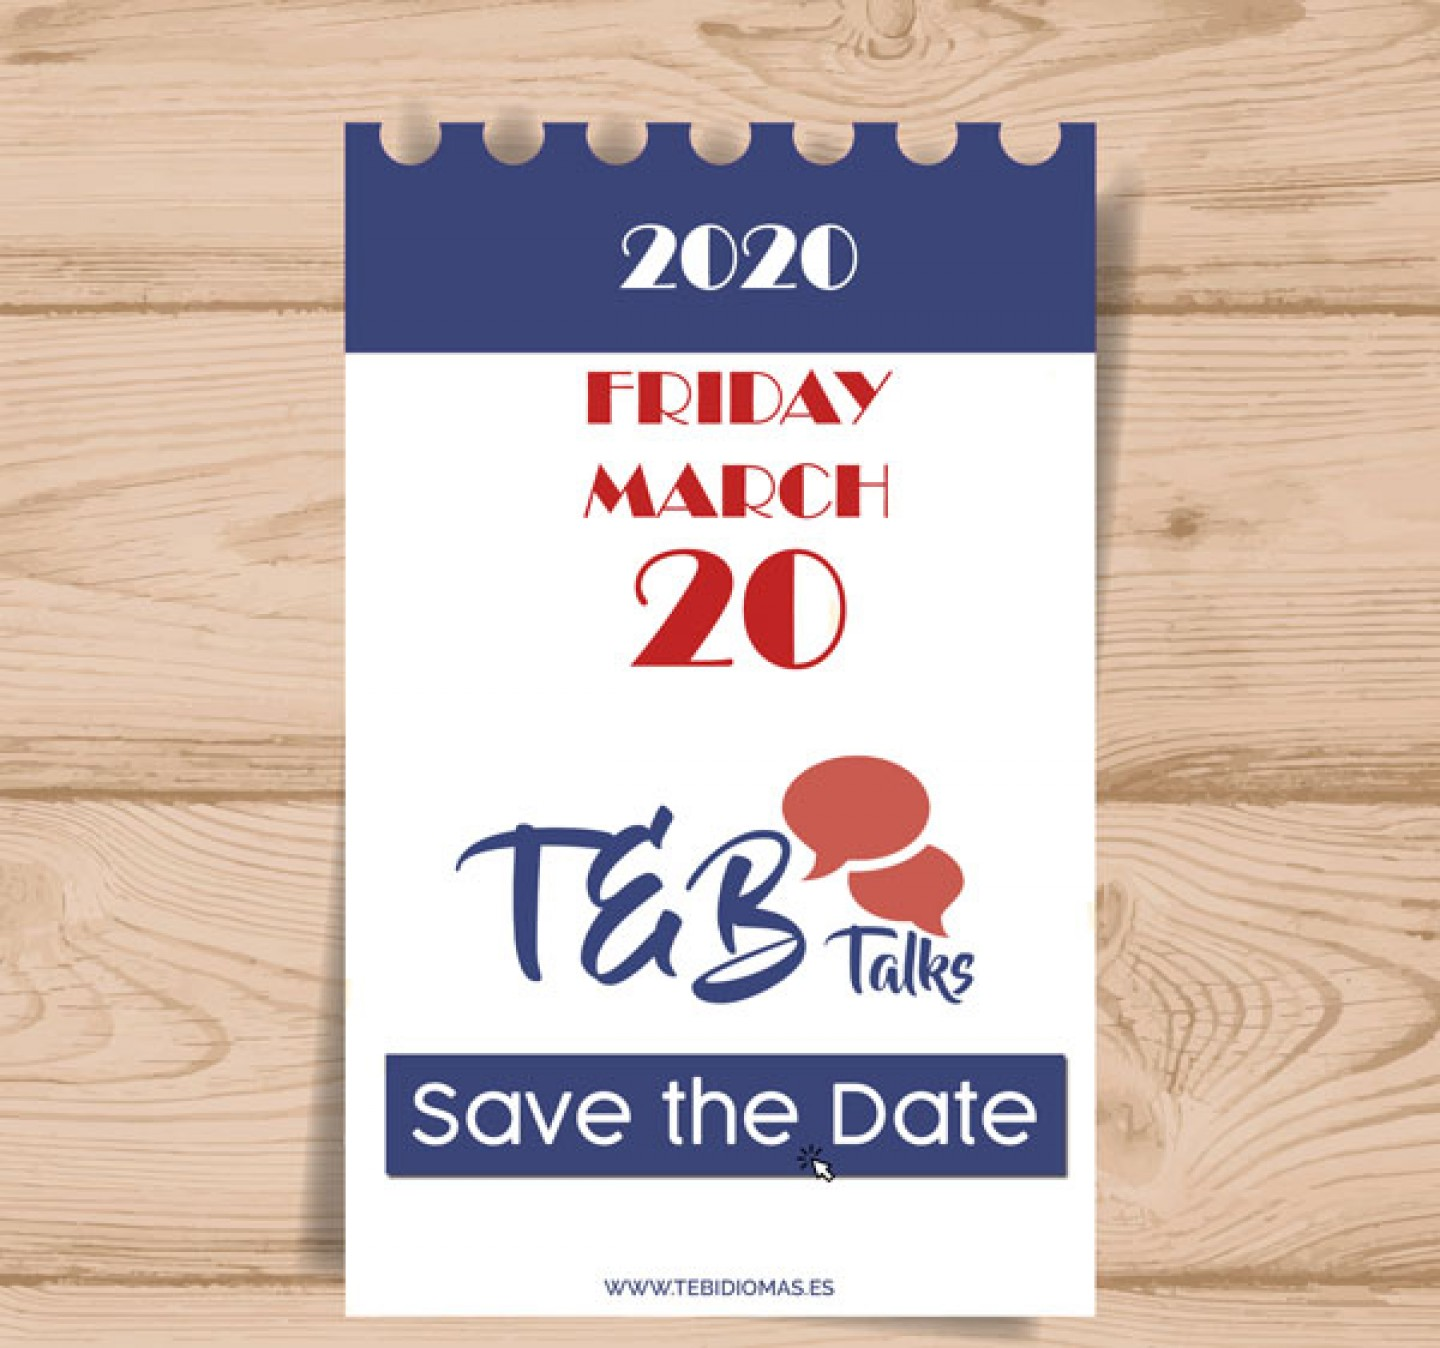 save-the-date-teb-talks